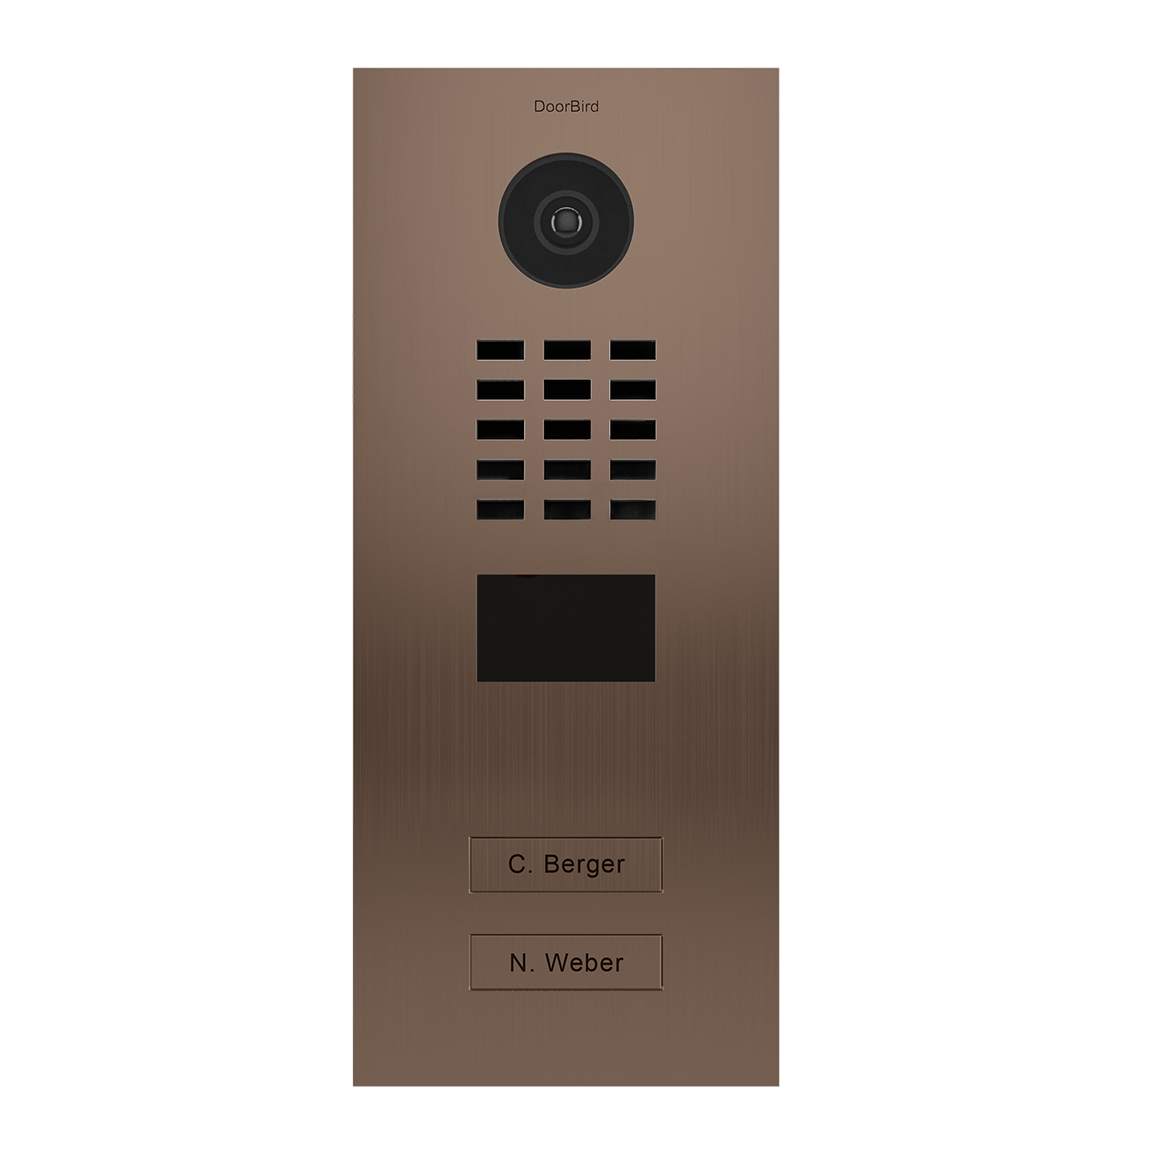 DoorBird Wireless Intercom